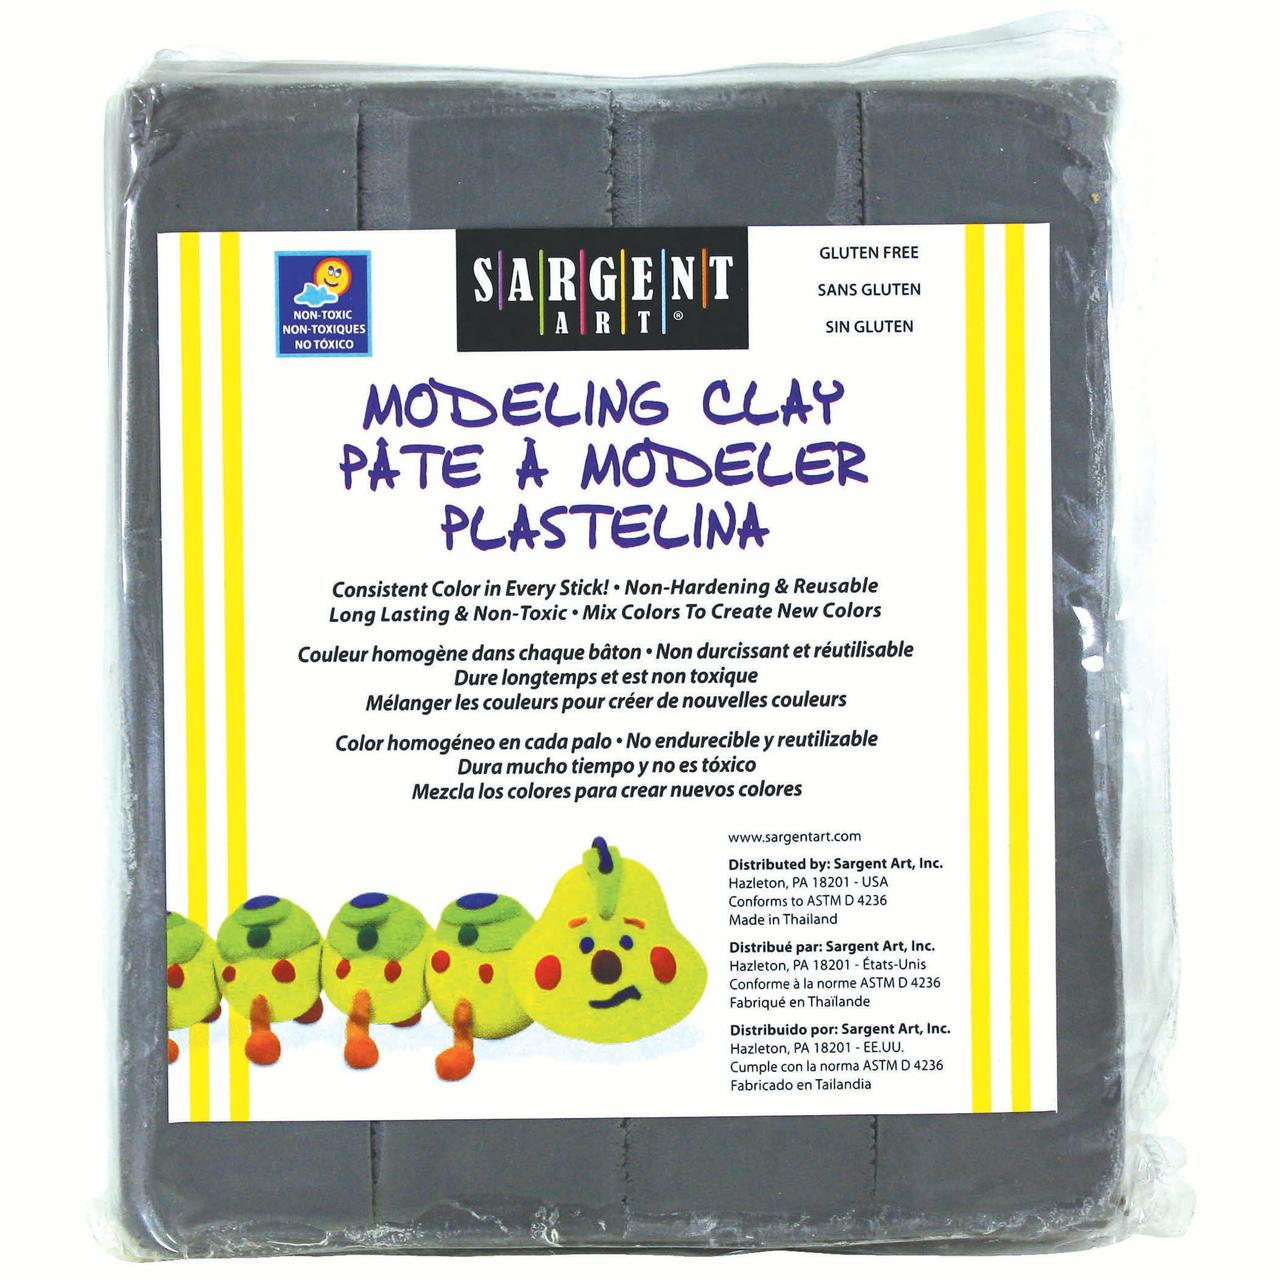 Sargent Art® Modeling Clay, Gray, Pack of 12 packs